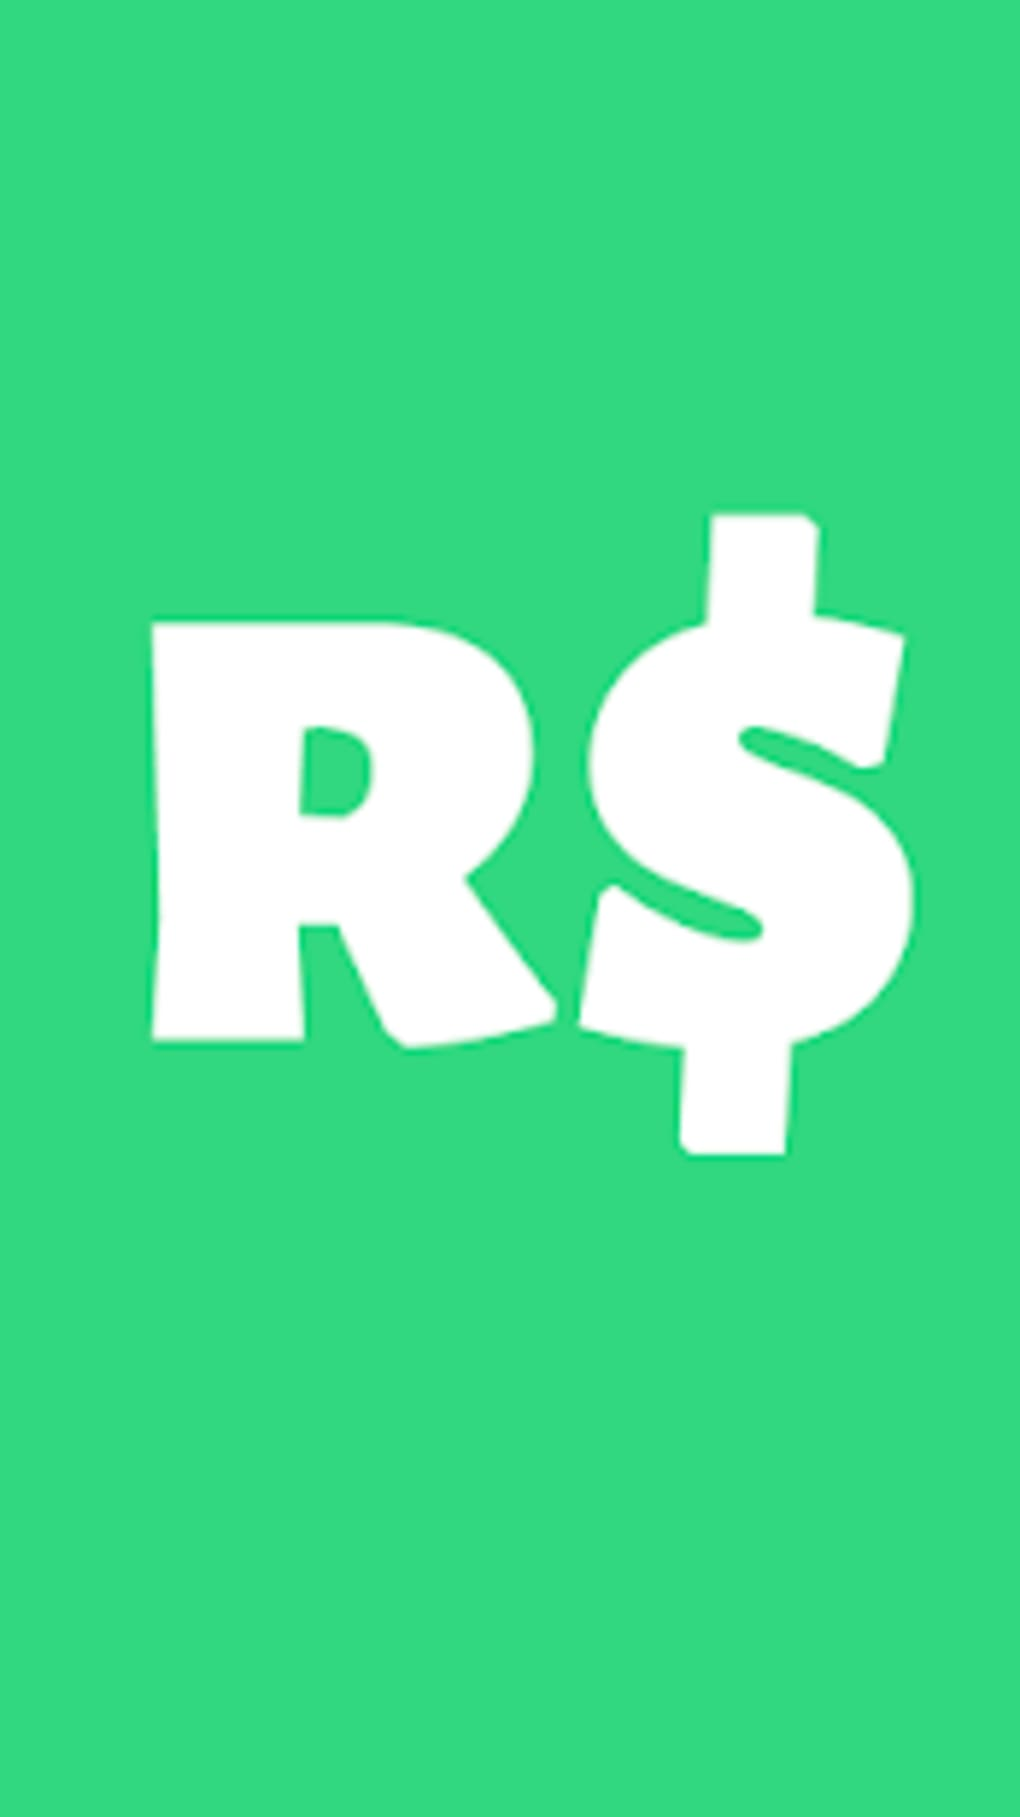 Robux Free Tips Apk For Android Download